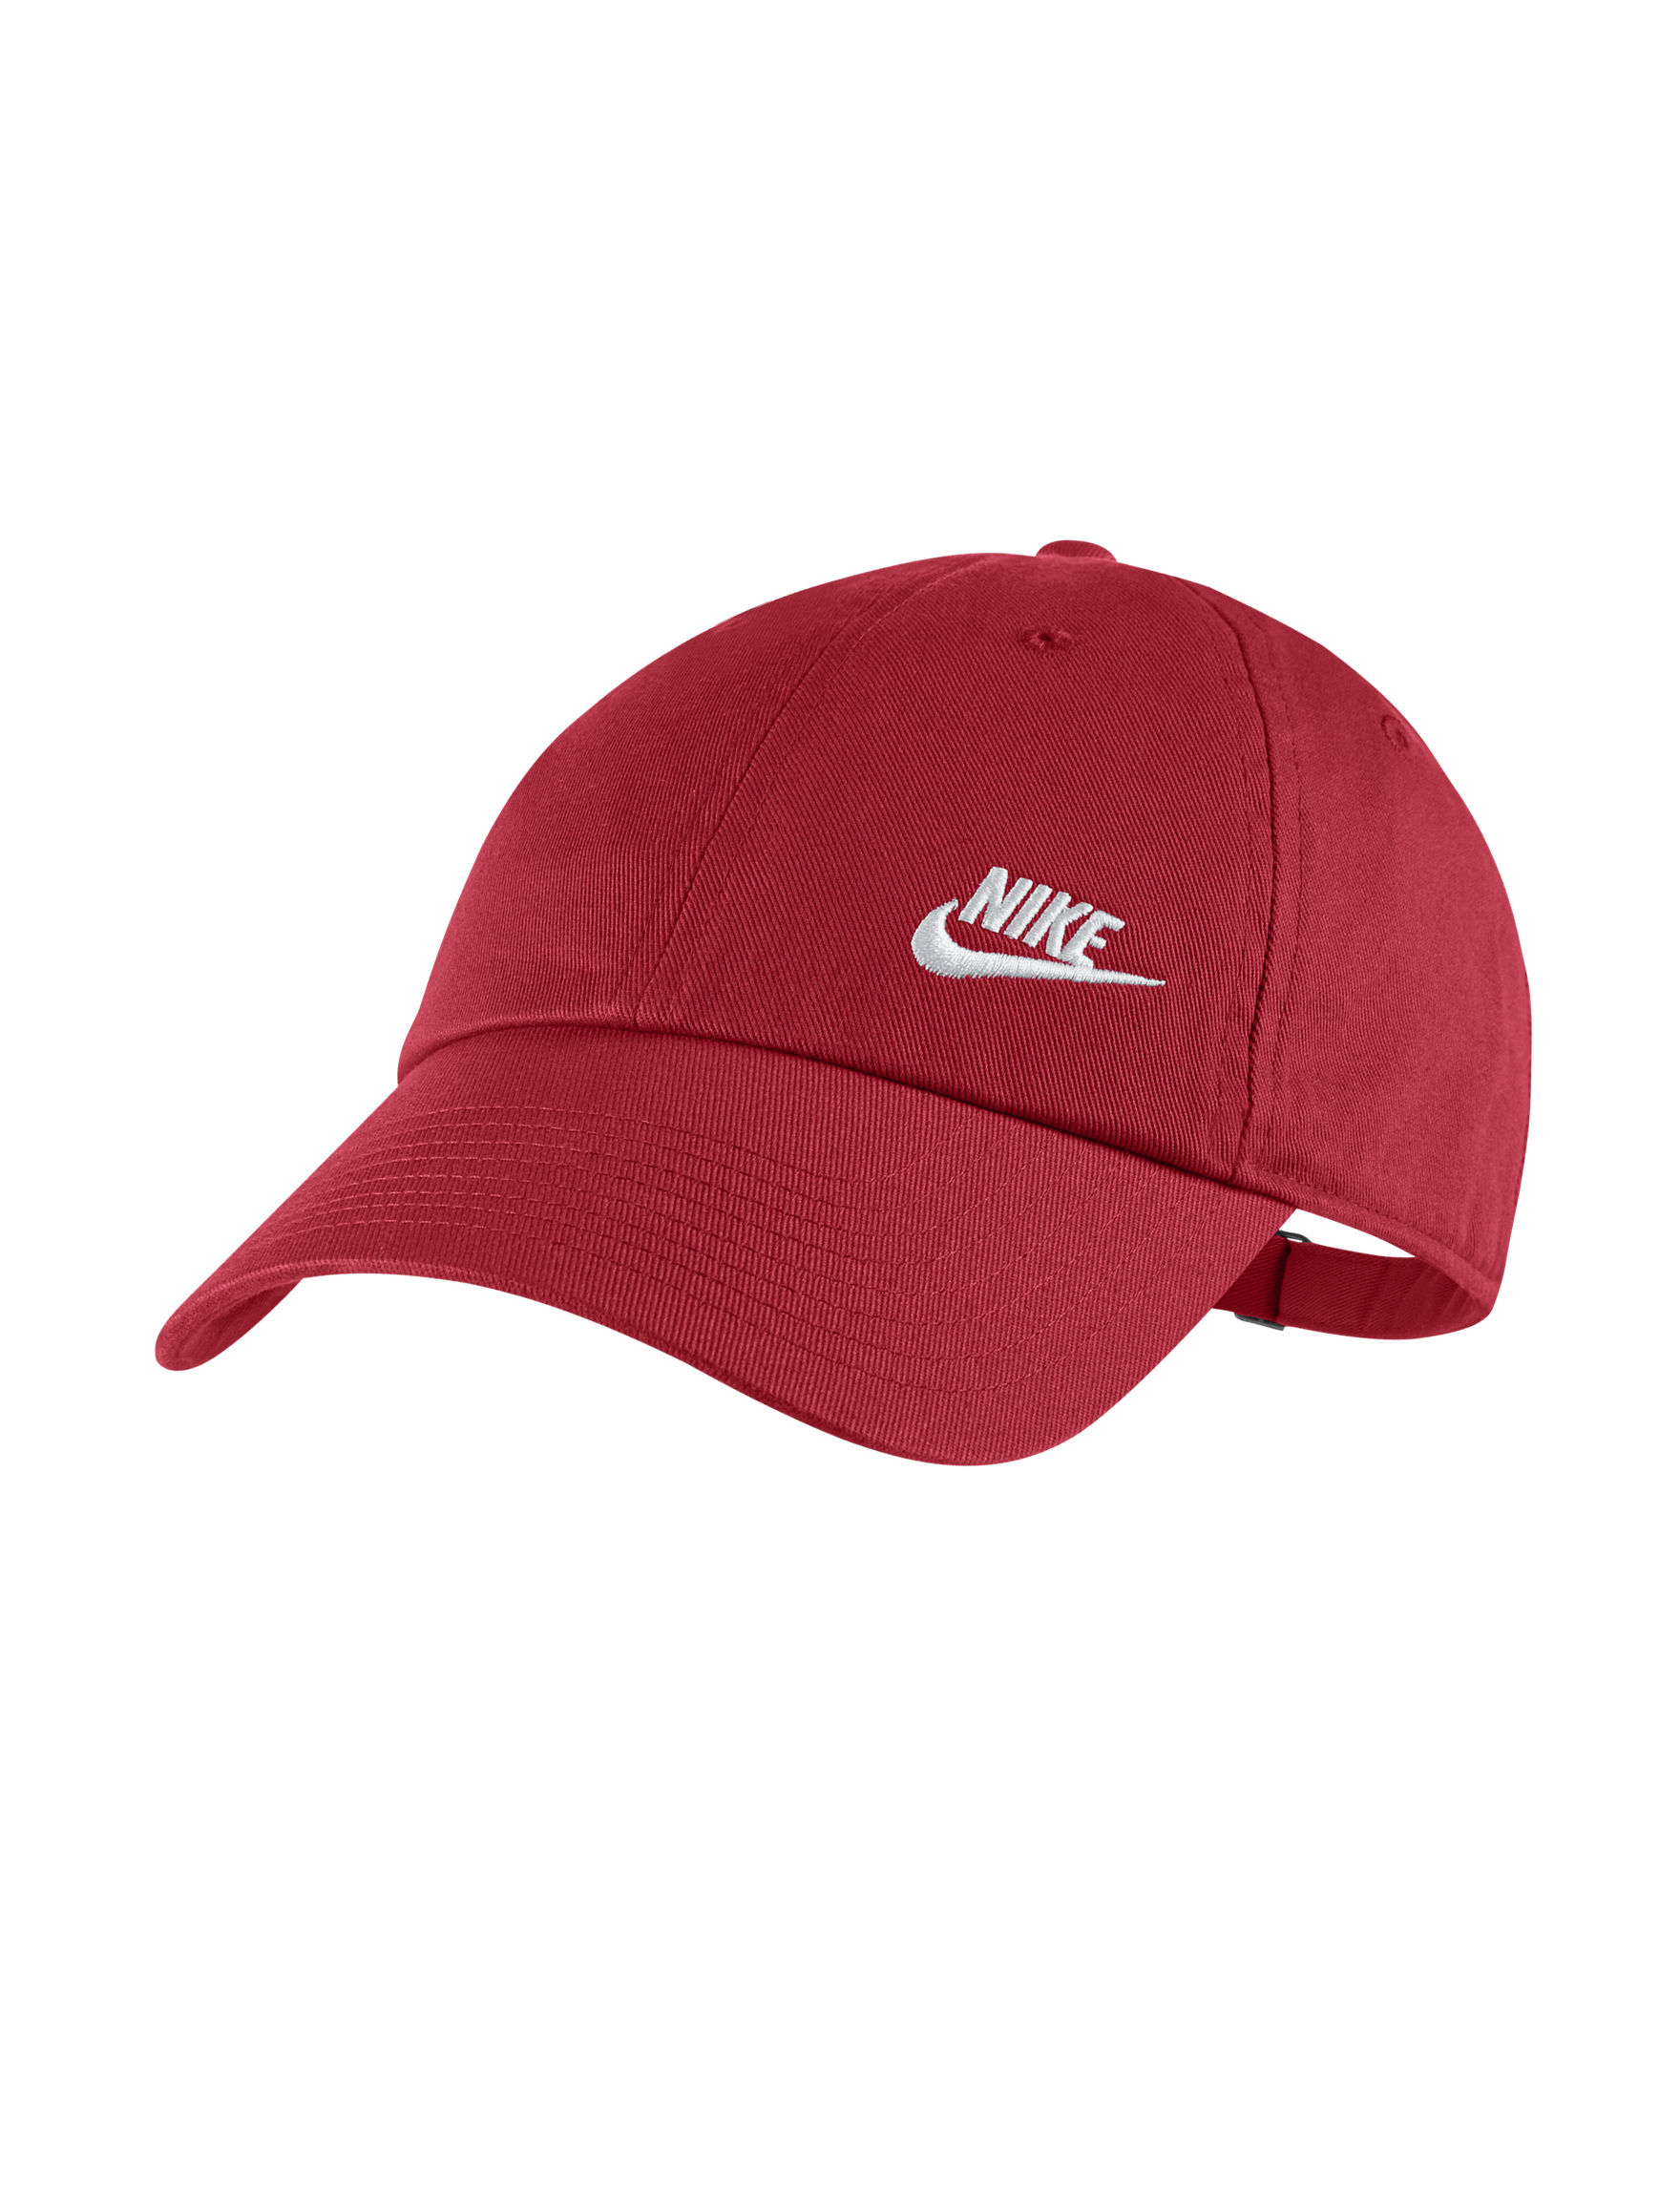 Nike Red Hats & Headwear